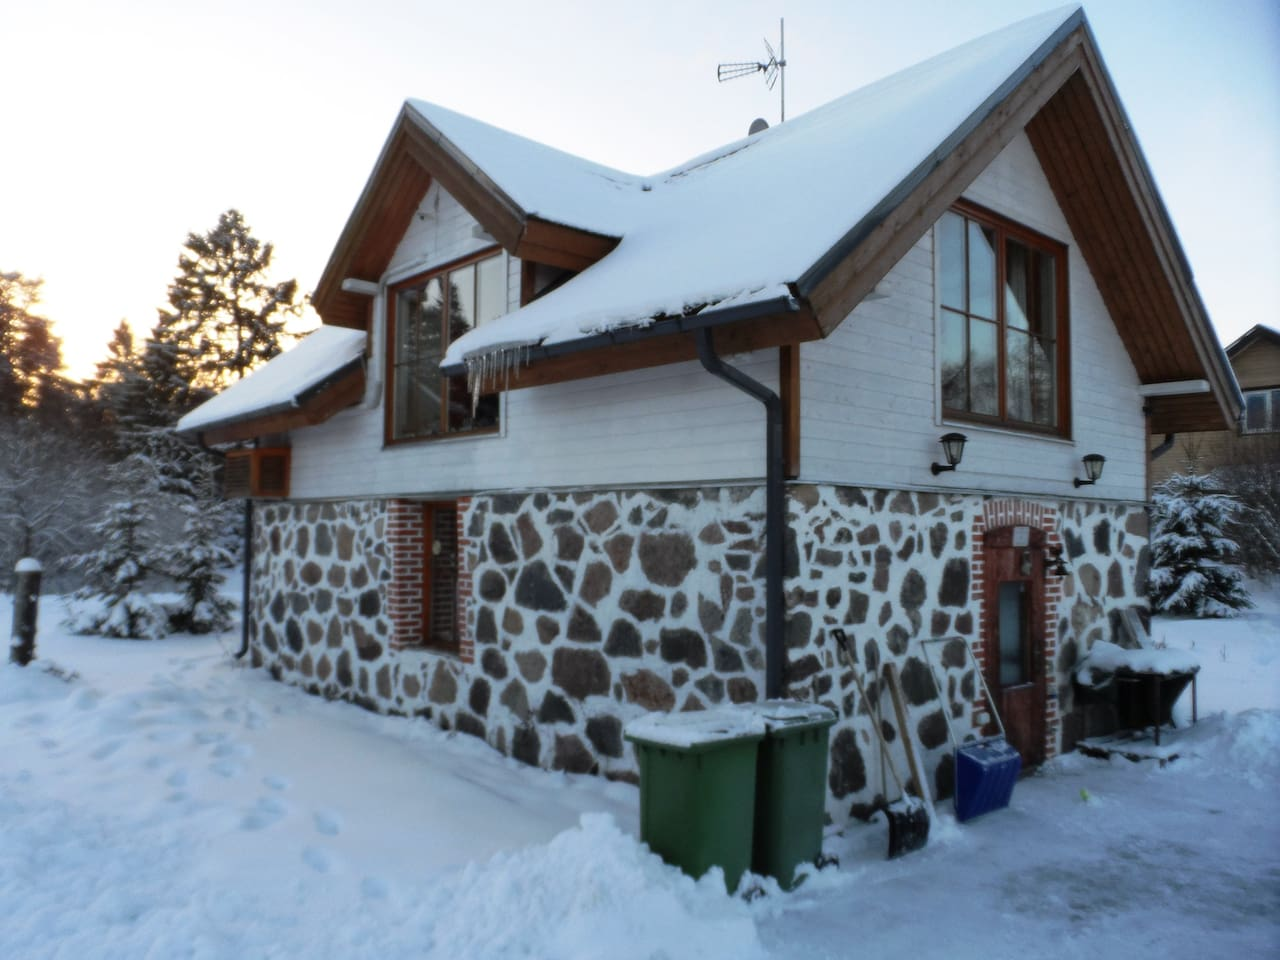 House in winter time.